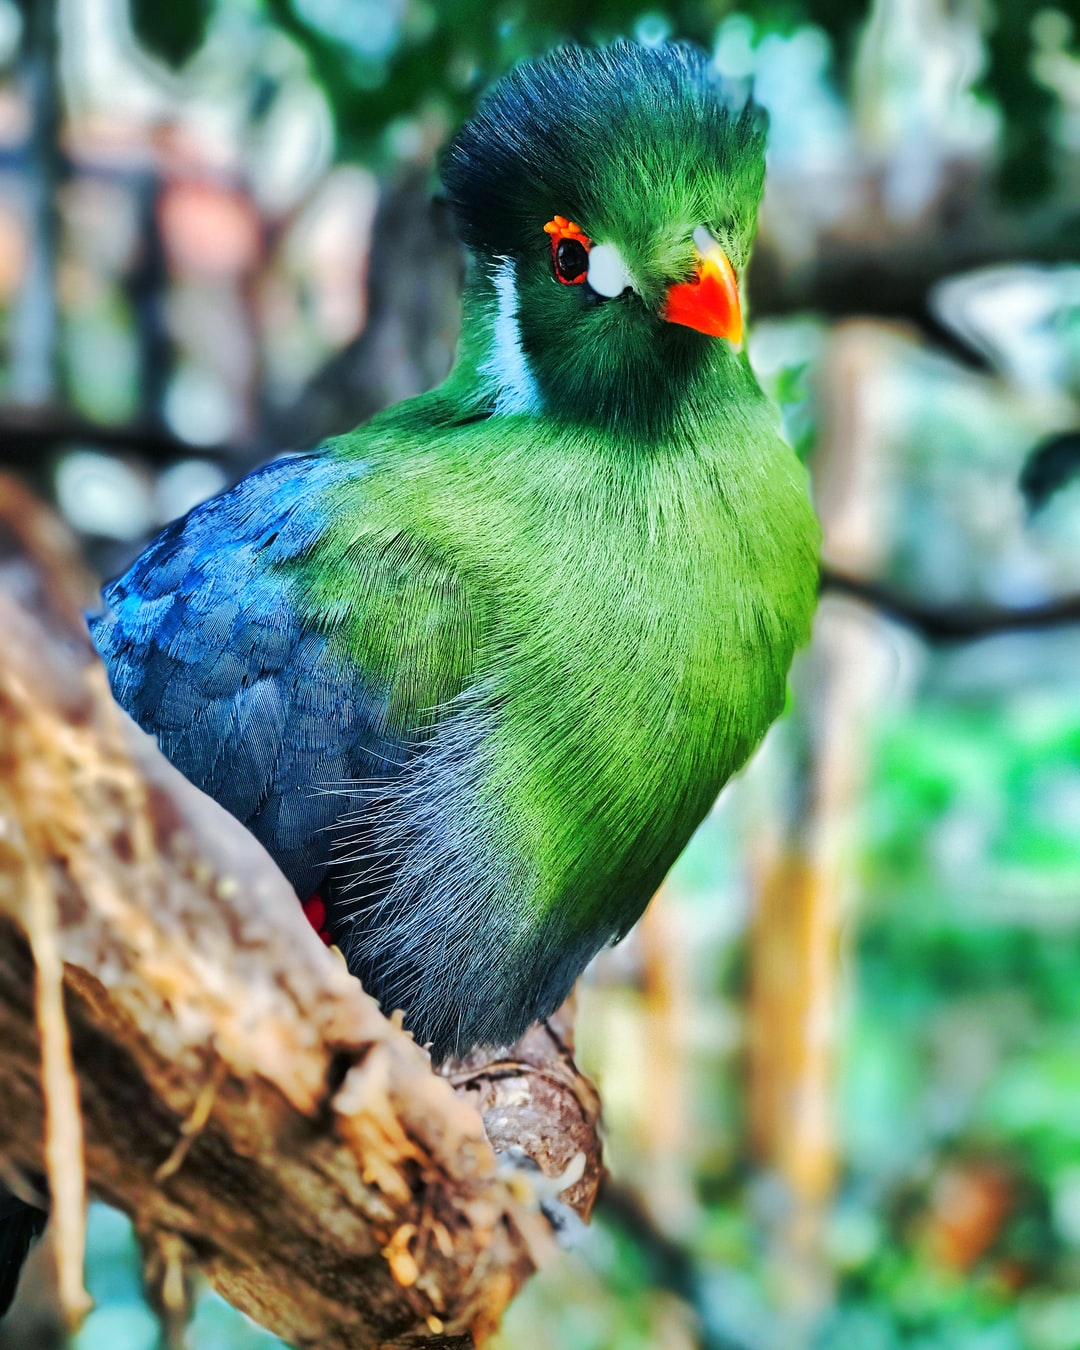 500 bird pictures hd download free images on unsplash - Hd birds images download ...